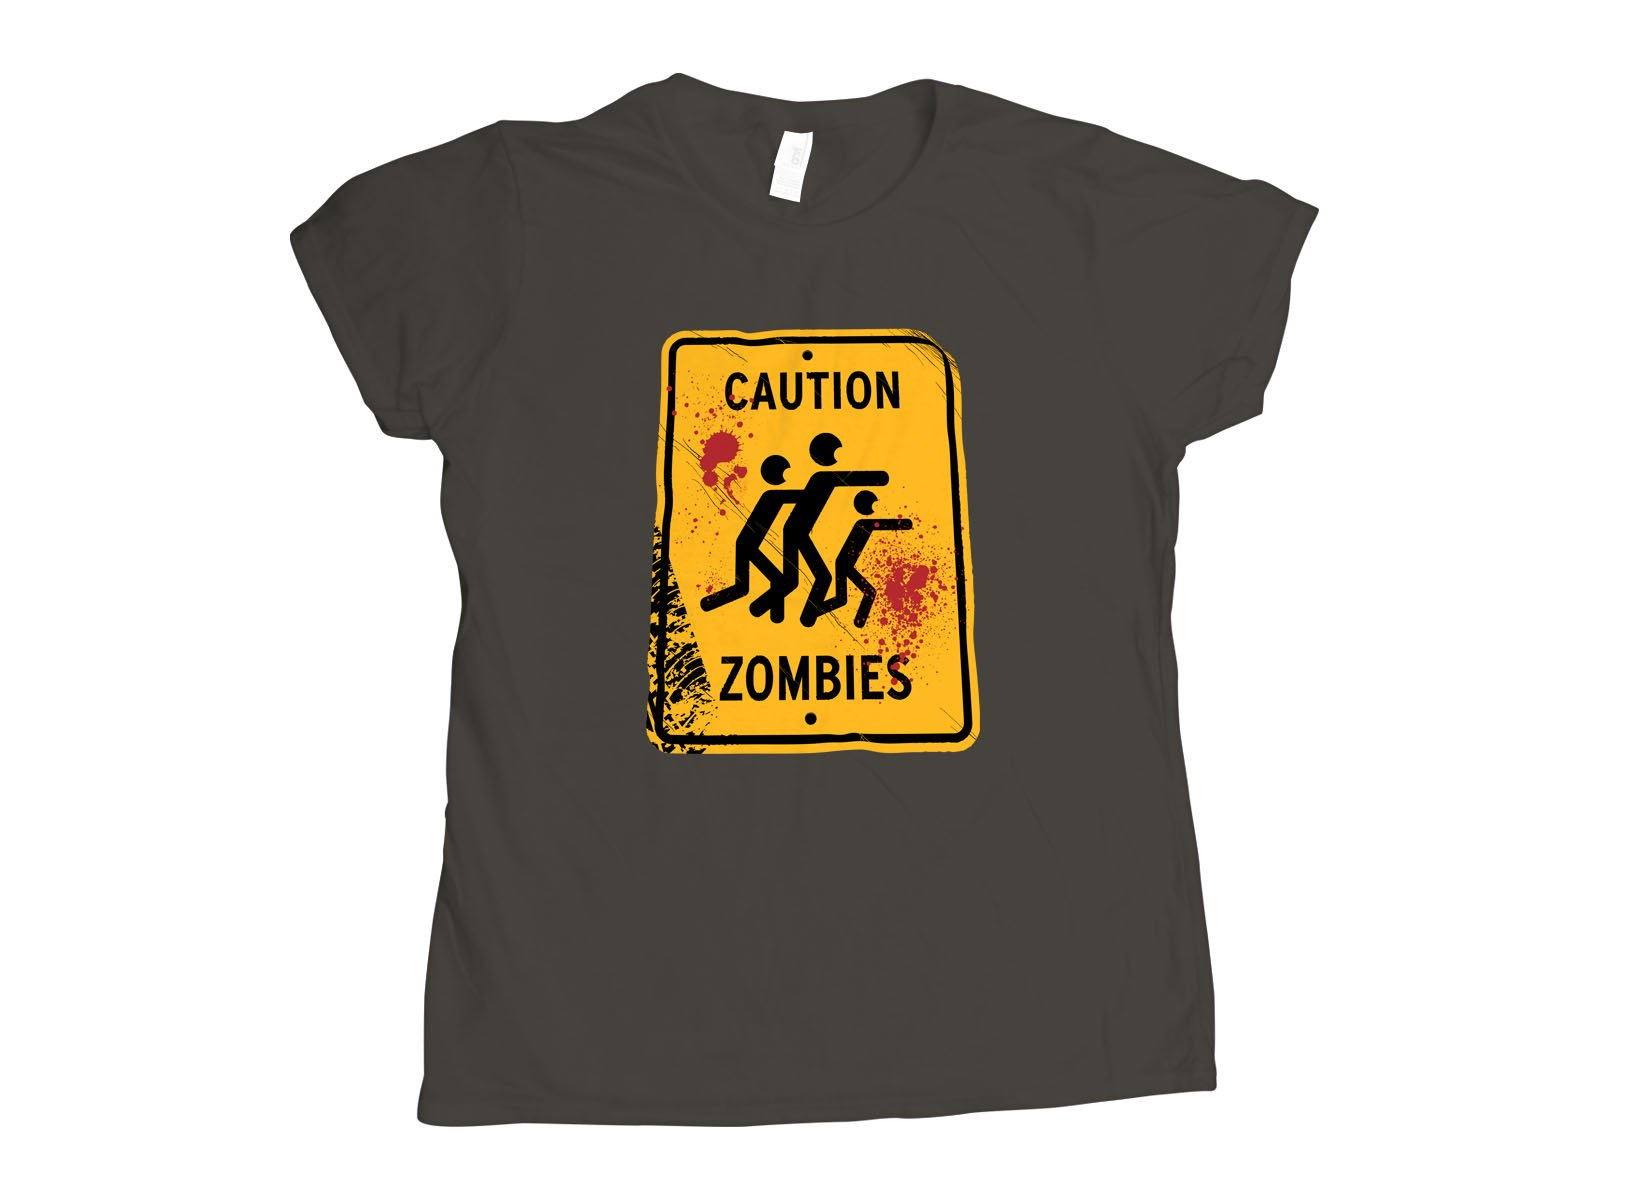 Caution Zombies on Womens T-Shirt